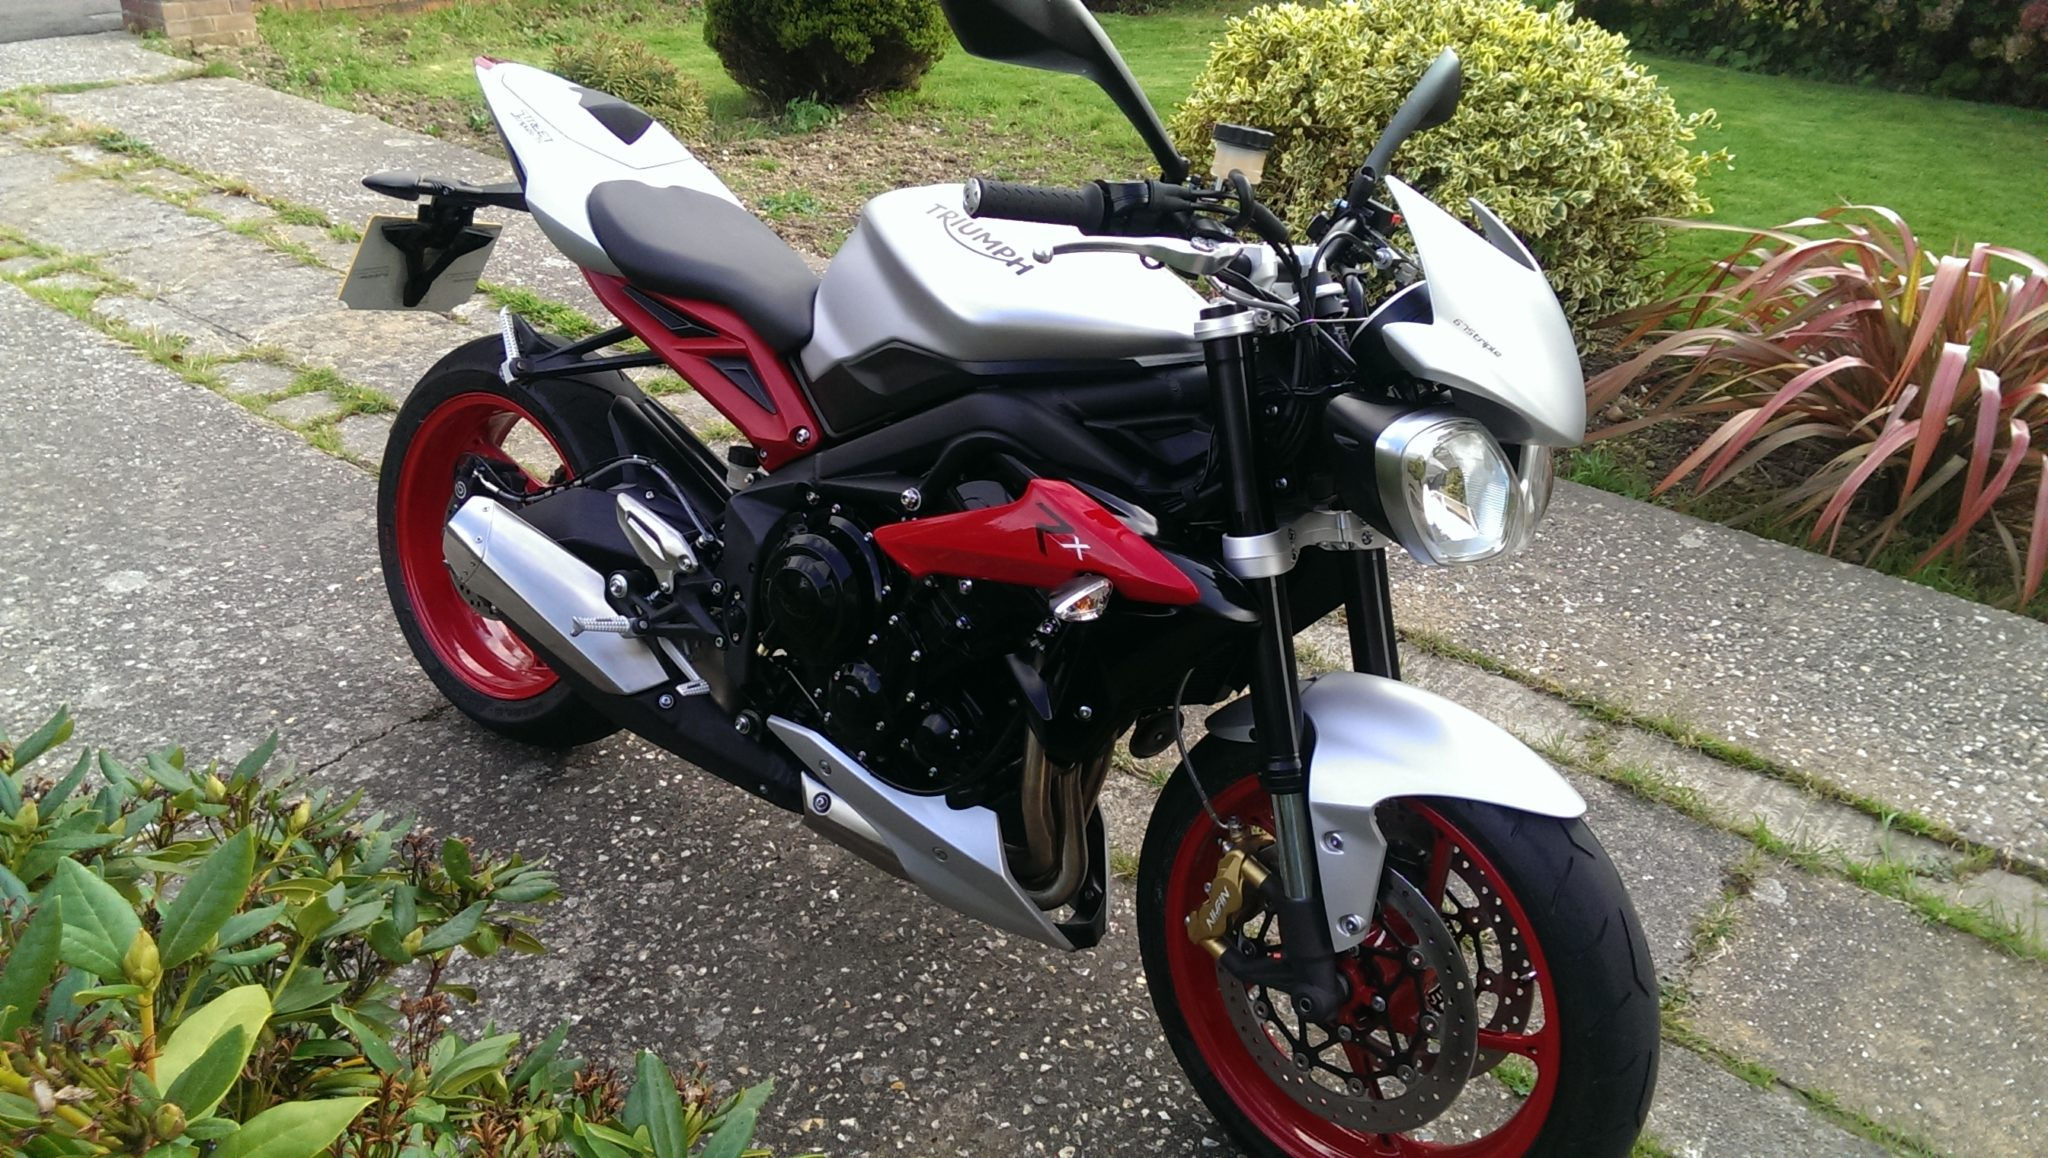 Alan Ford – Triumph Street Triple R